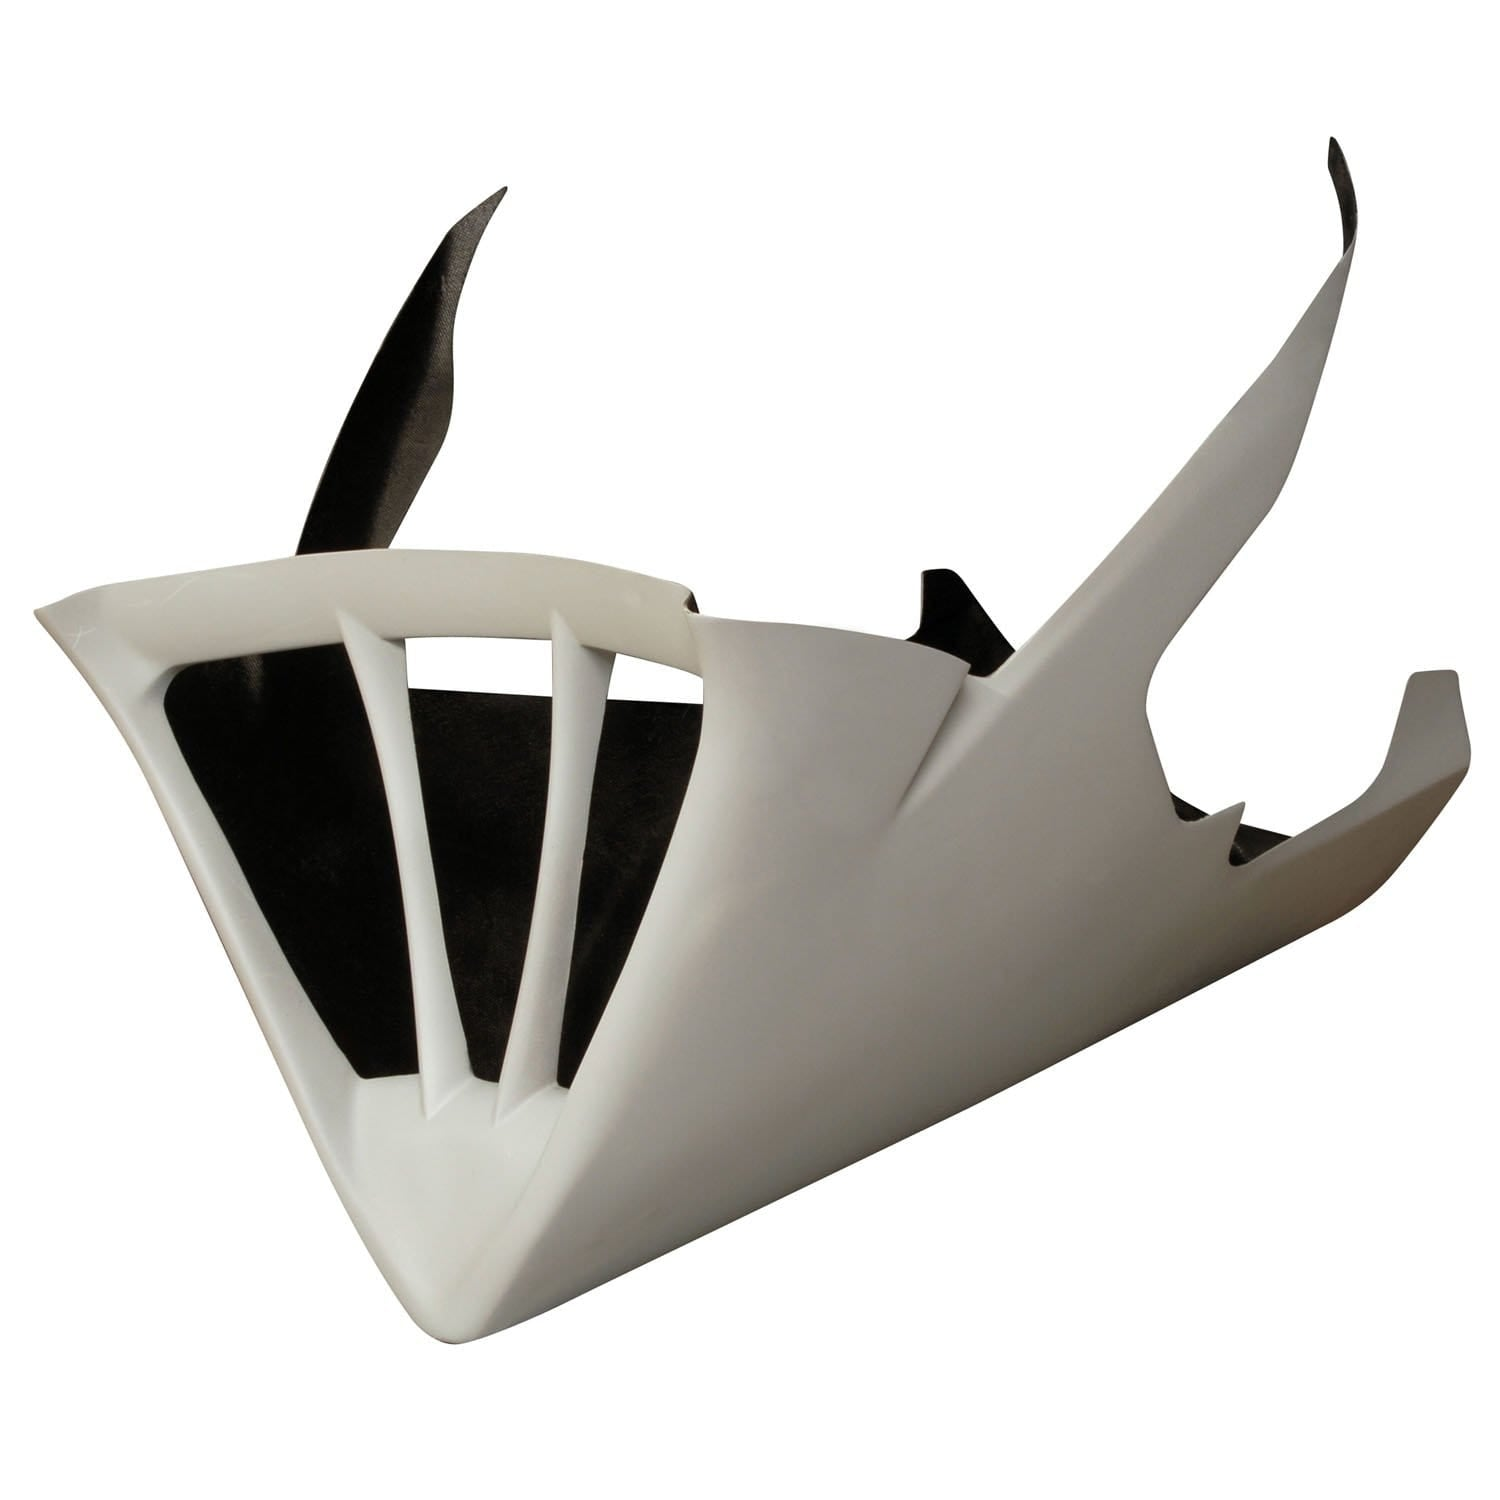 04-06 Yam R1 Lower Fairing Pro Series - Woodcraft Technologies - Motorcycle Parts